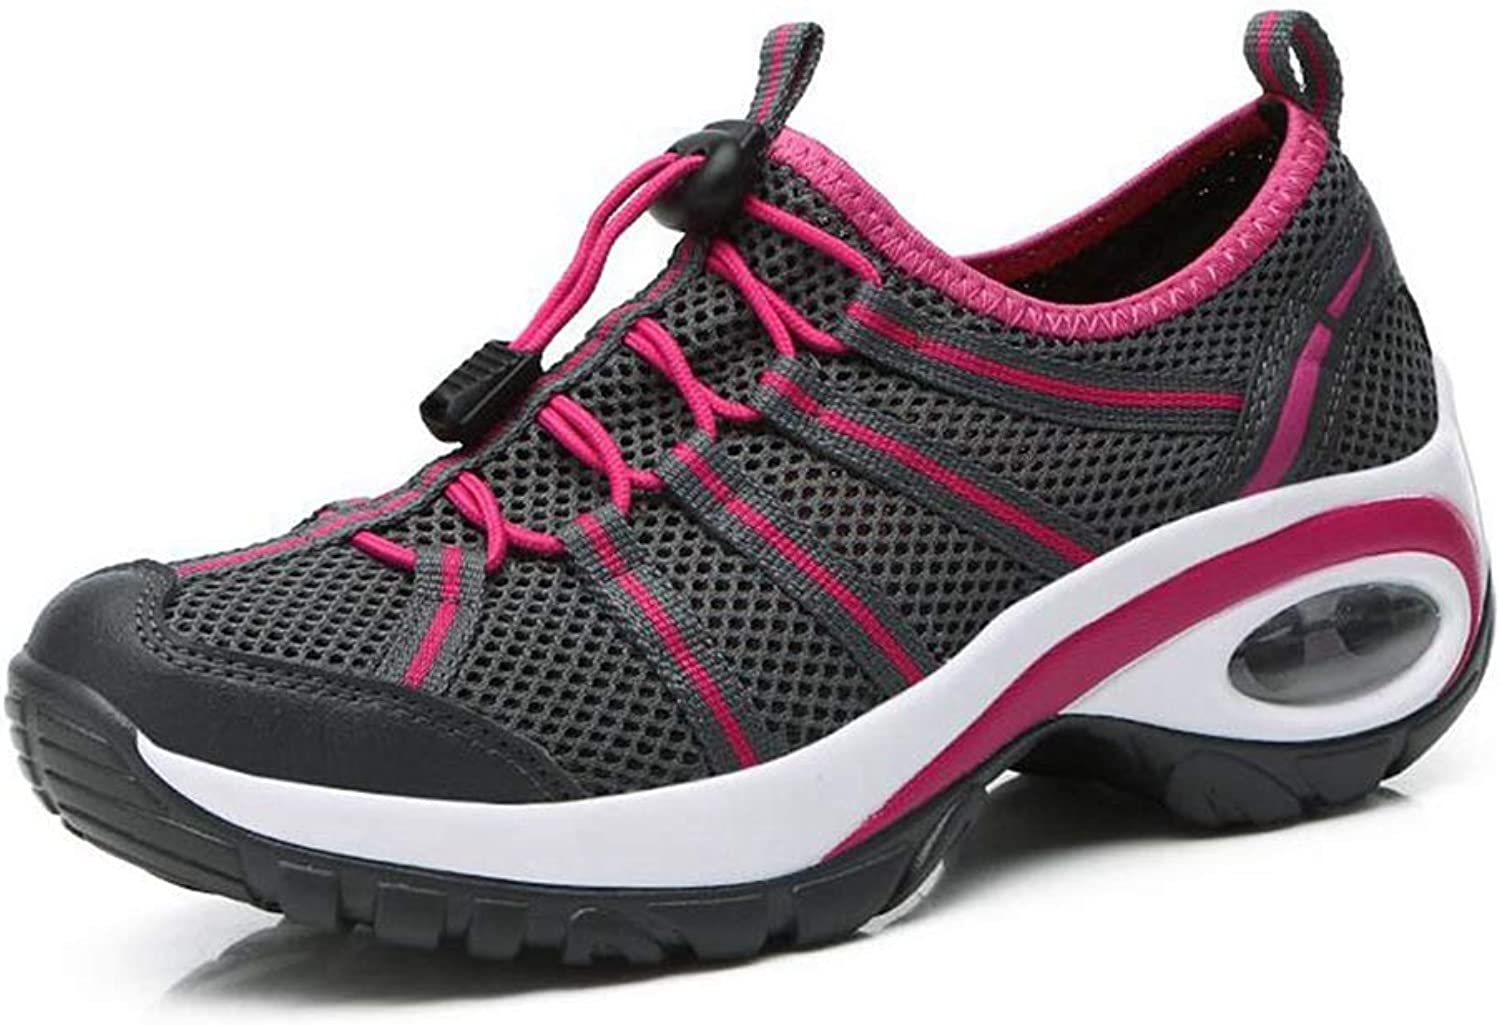 Womens Wedge Sneakers Casual Comfortable Air Cushion Ultra Lightweight Mesh Breathable Lace Up Athletic shoes